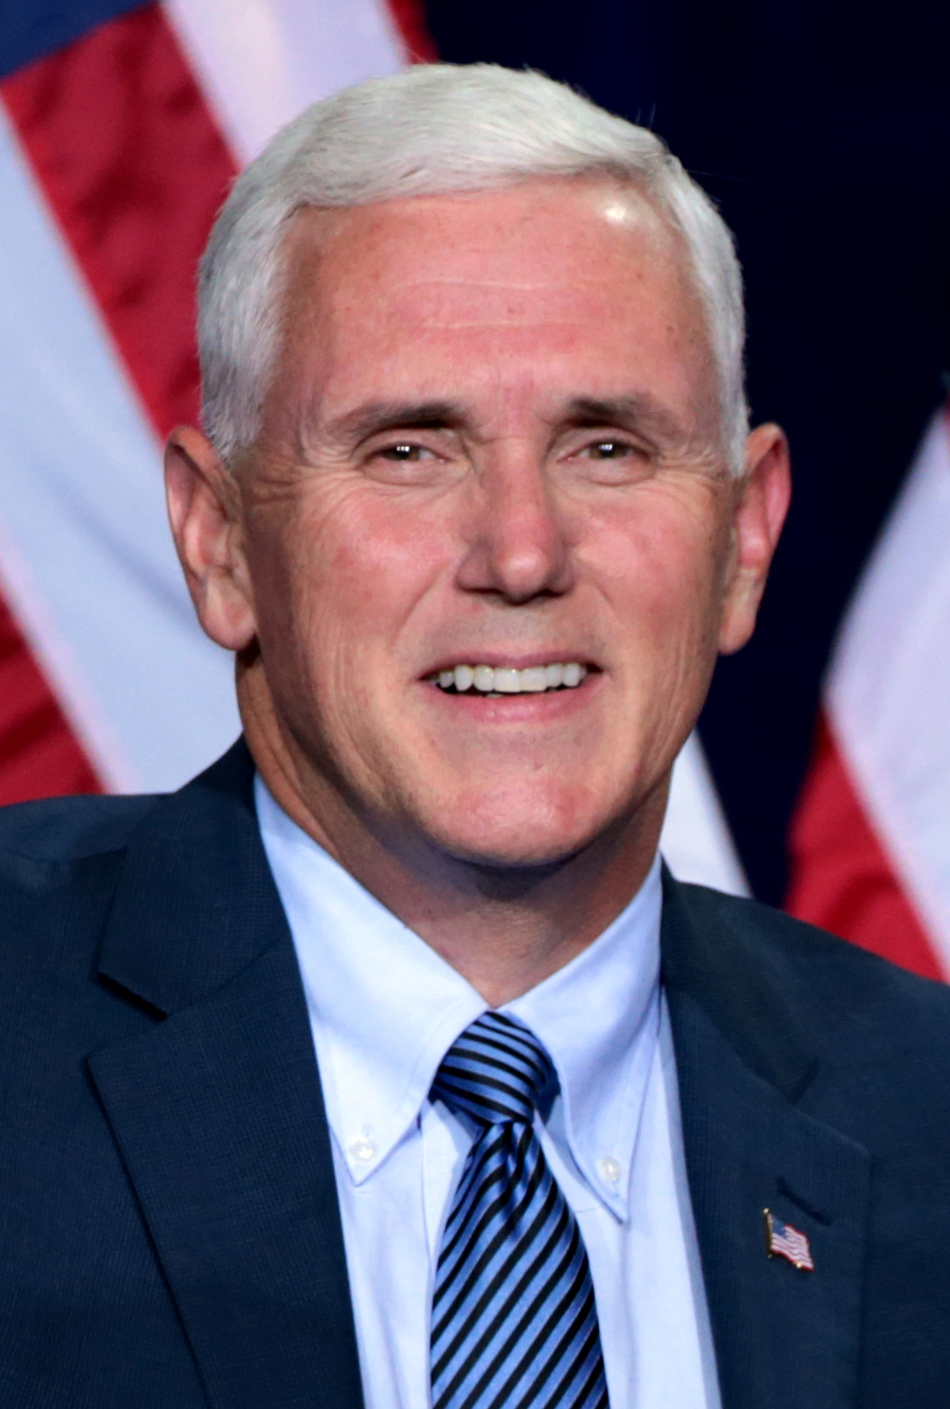 Mike Pence earned a 0,24 million dollar salary - leaving the net worth at 1 million in 2018